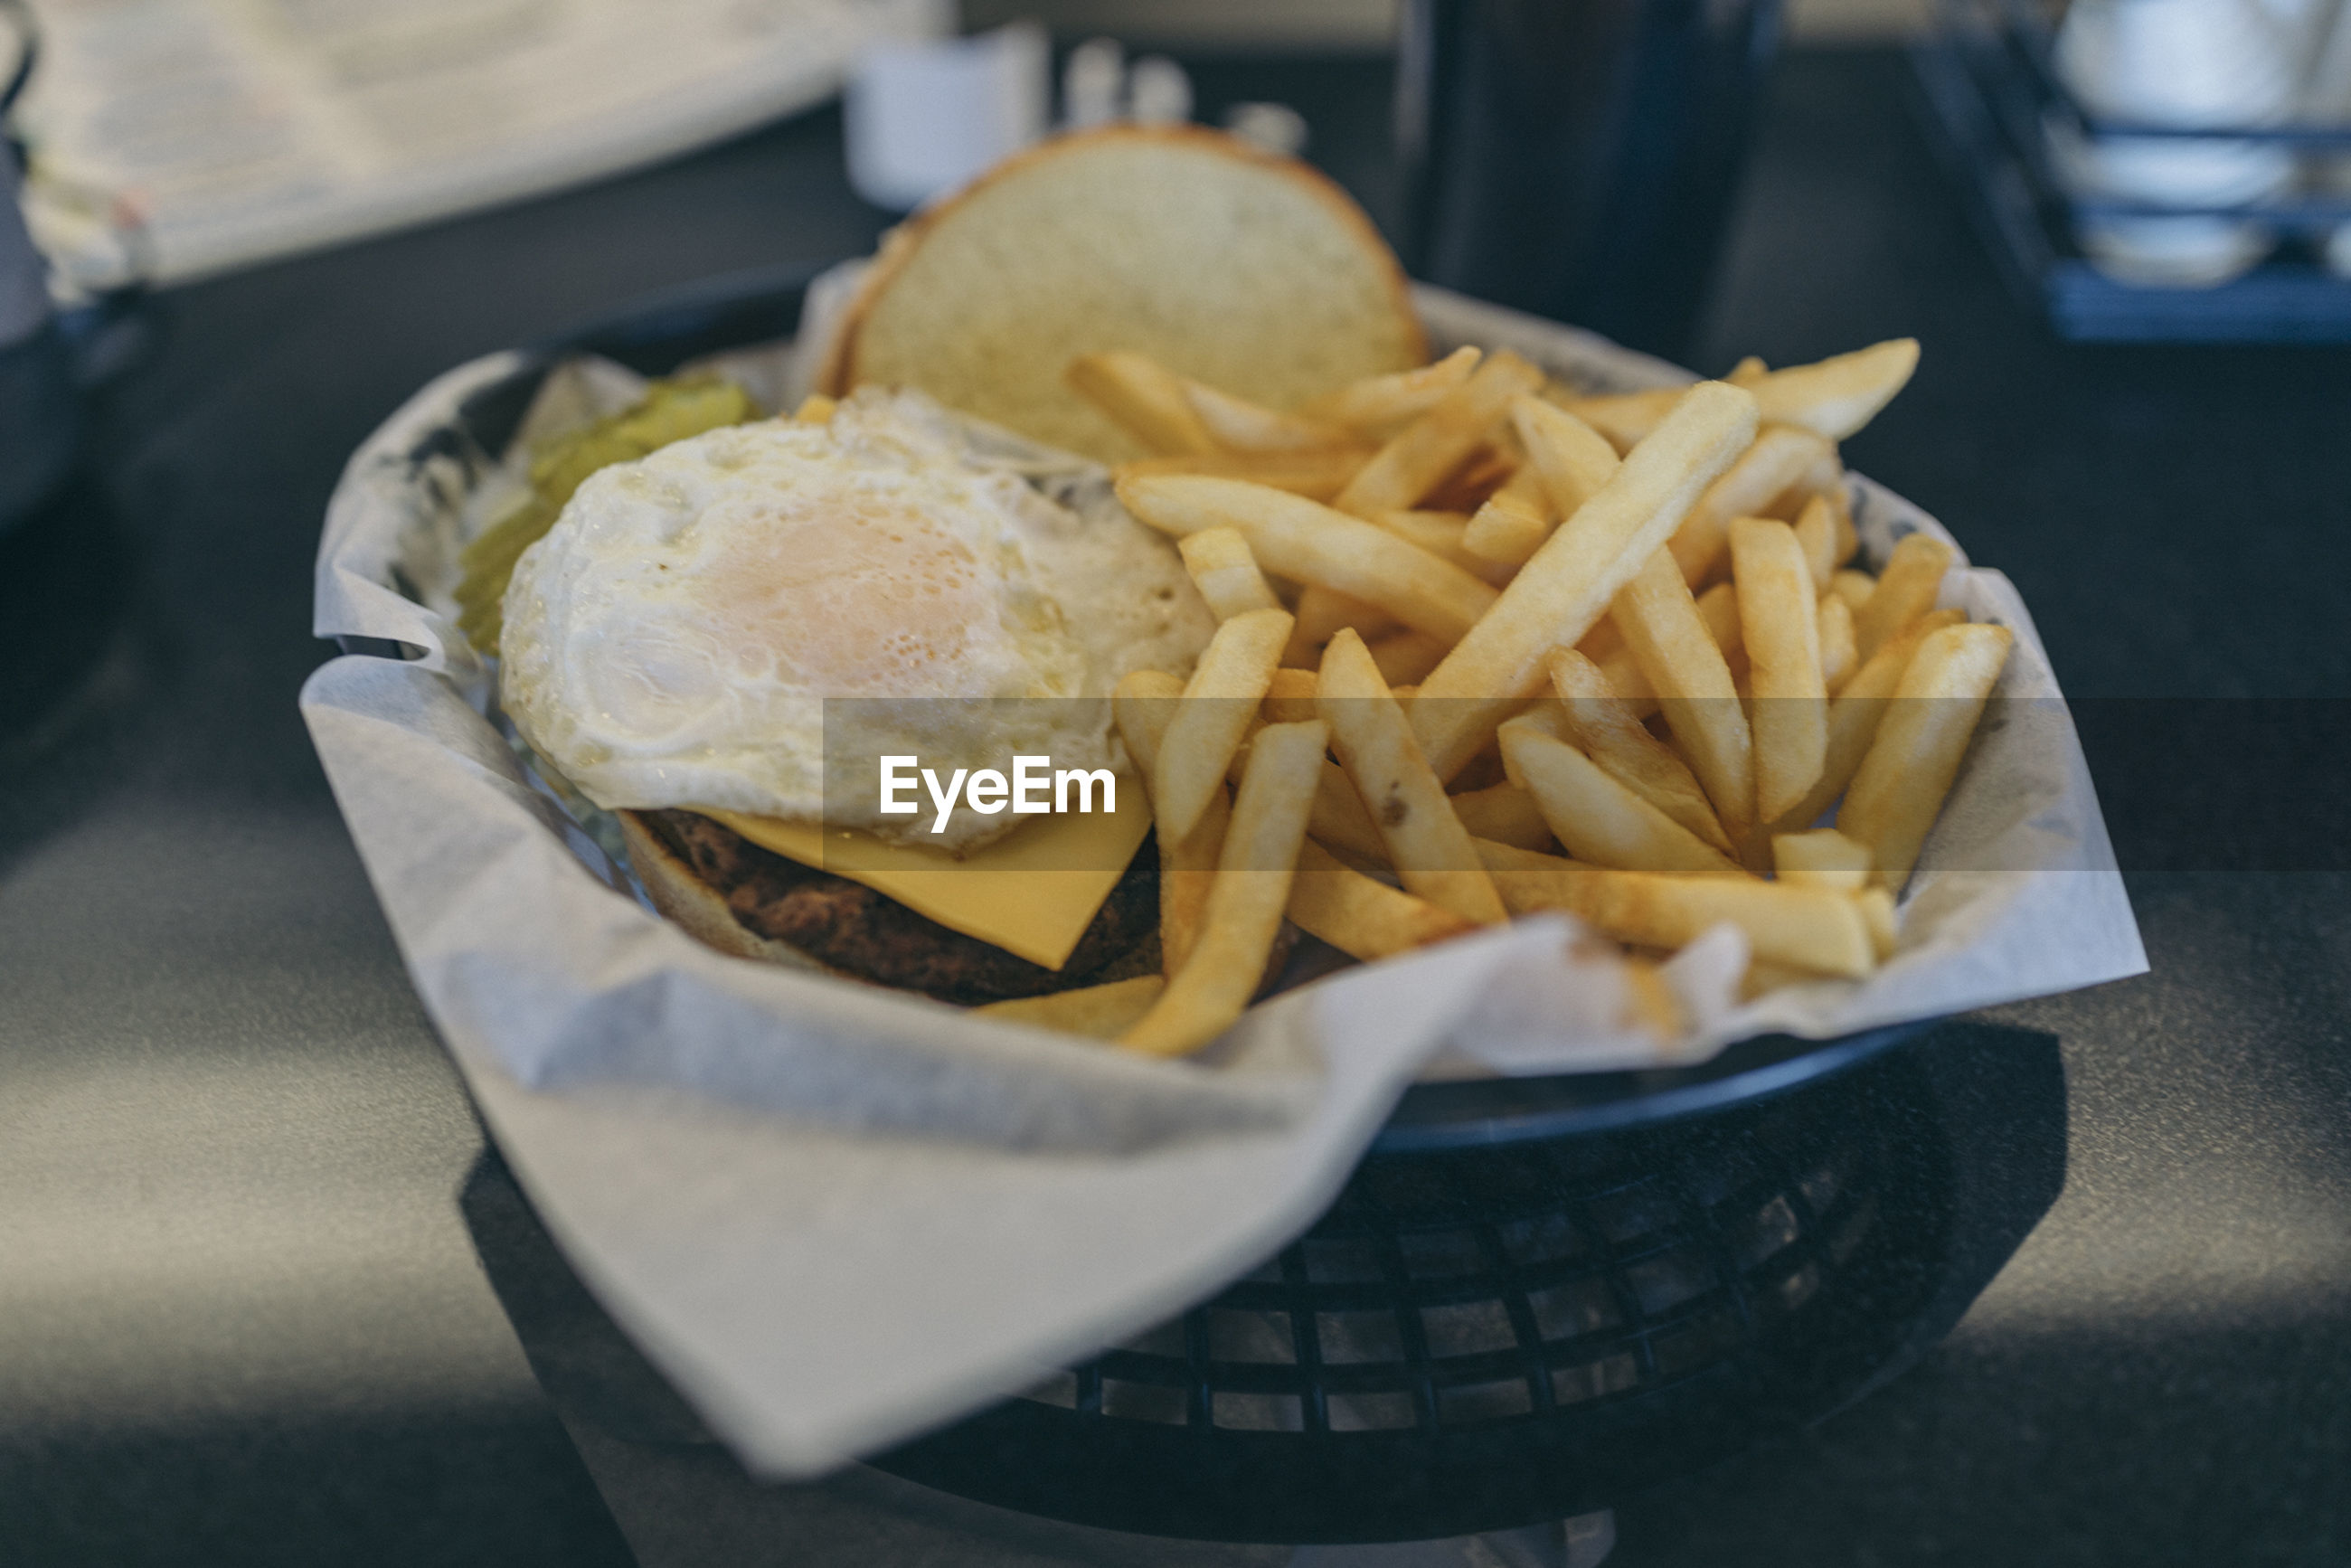 Close-up of burger with fries